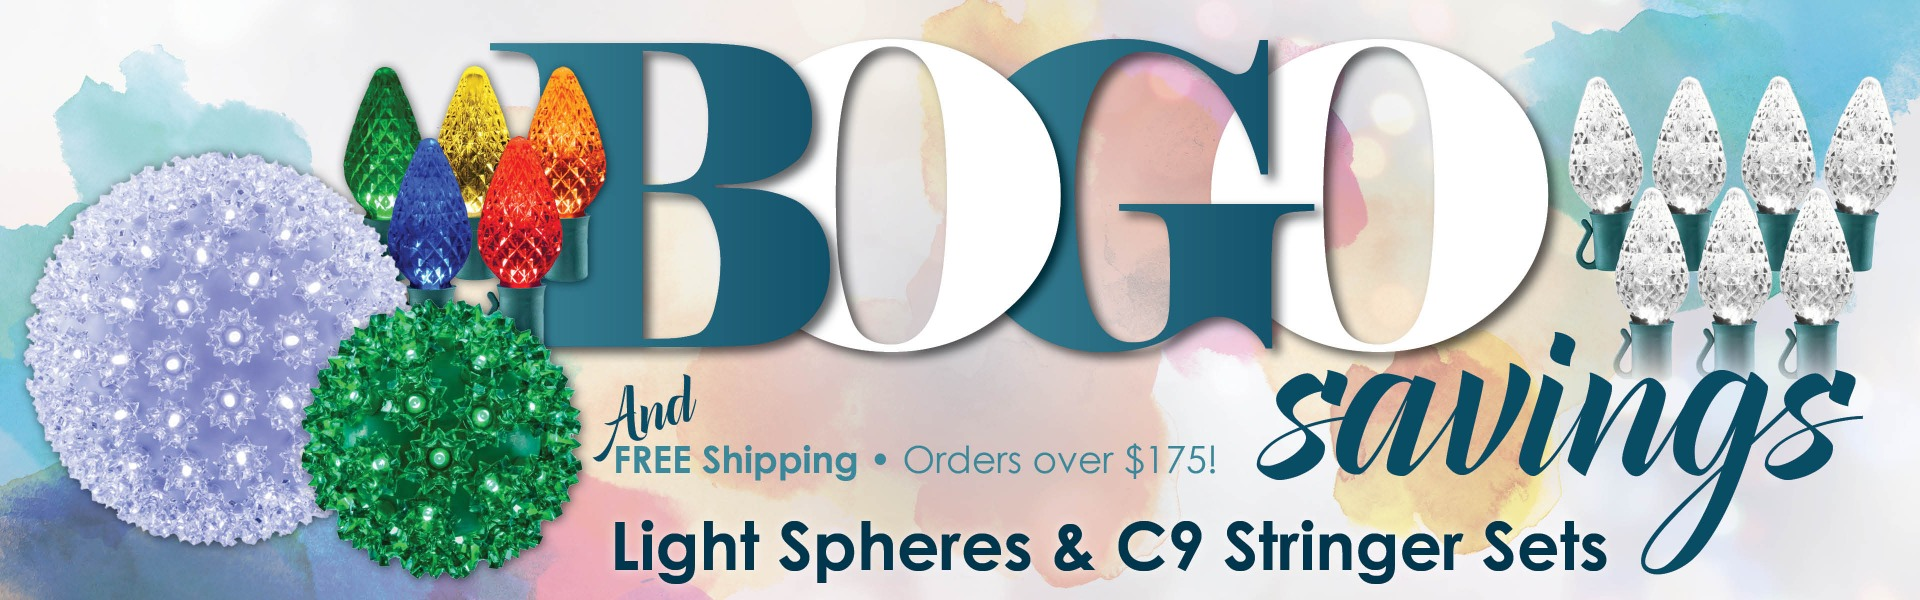 BOGO on LED Light Sphere and C9 Stringer Set. Free Shipping on Orders of $175 or More.